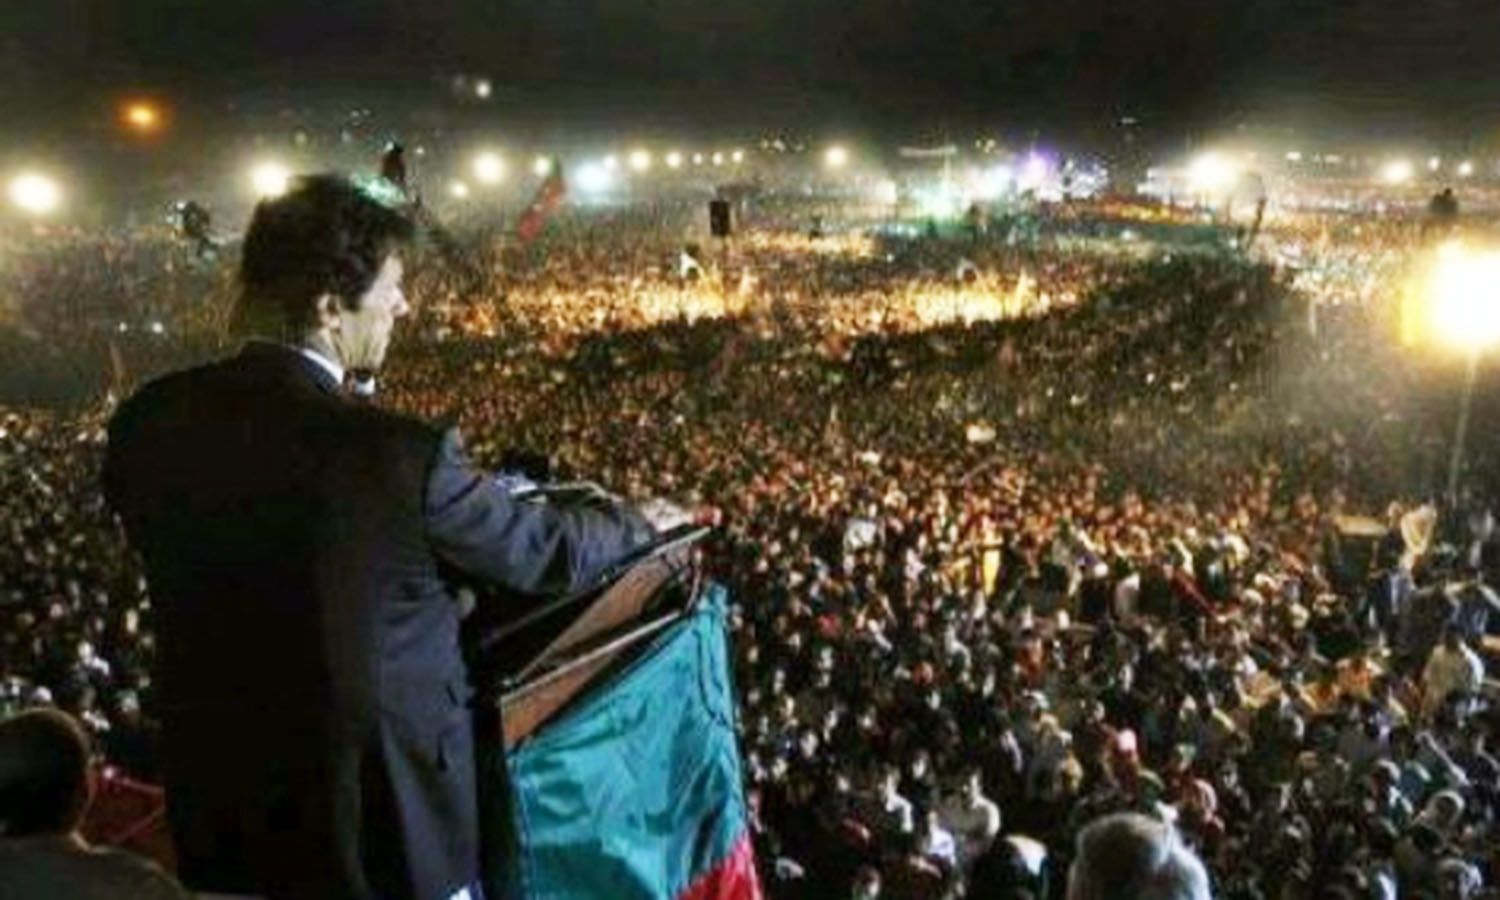 PTI chairman, Imran Khan, holding a rally in KP. His populist centre-right party, the PTI, swept the provincial polls in KP in 2013.